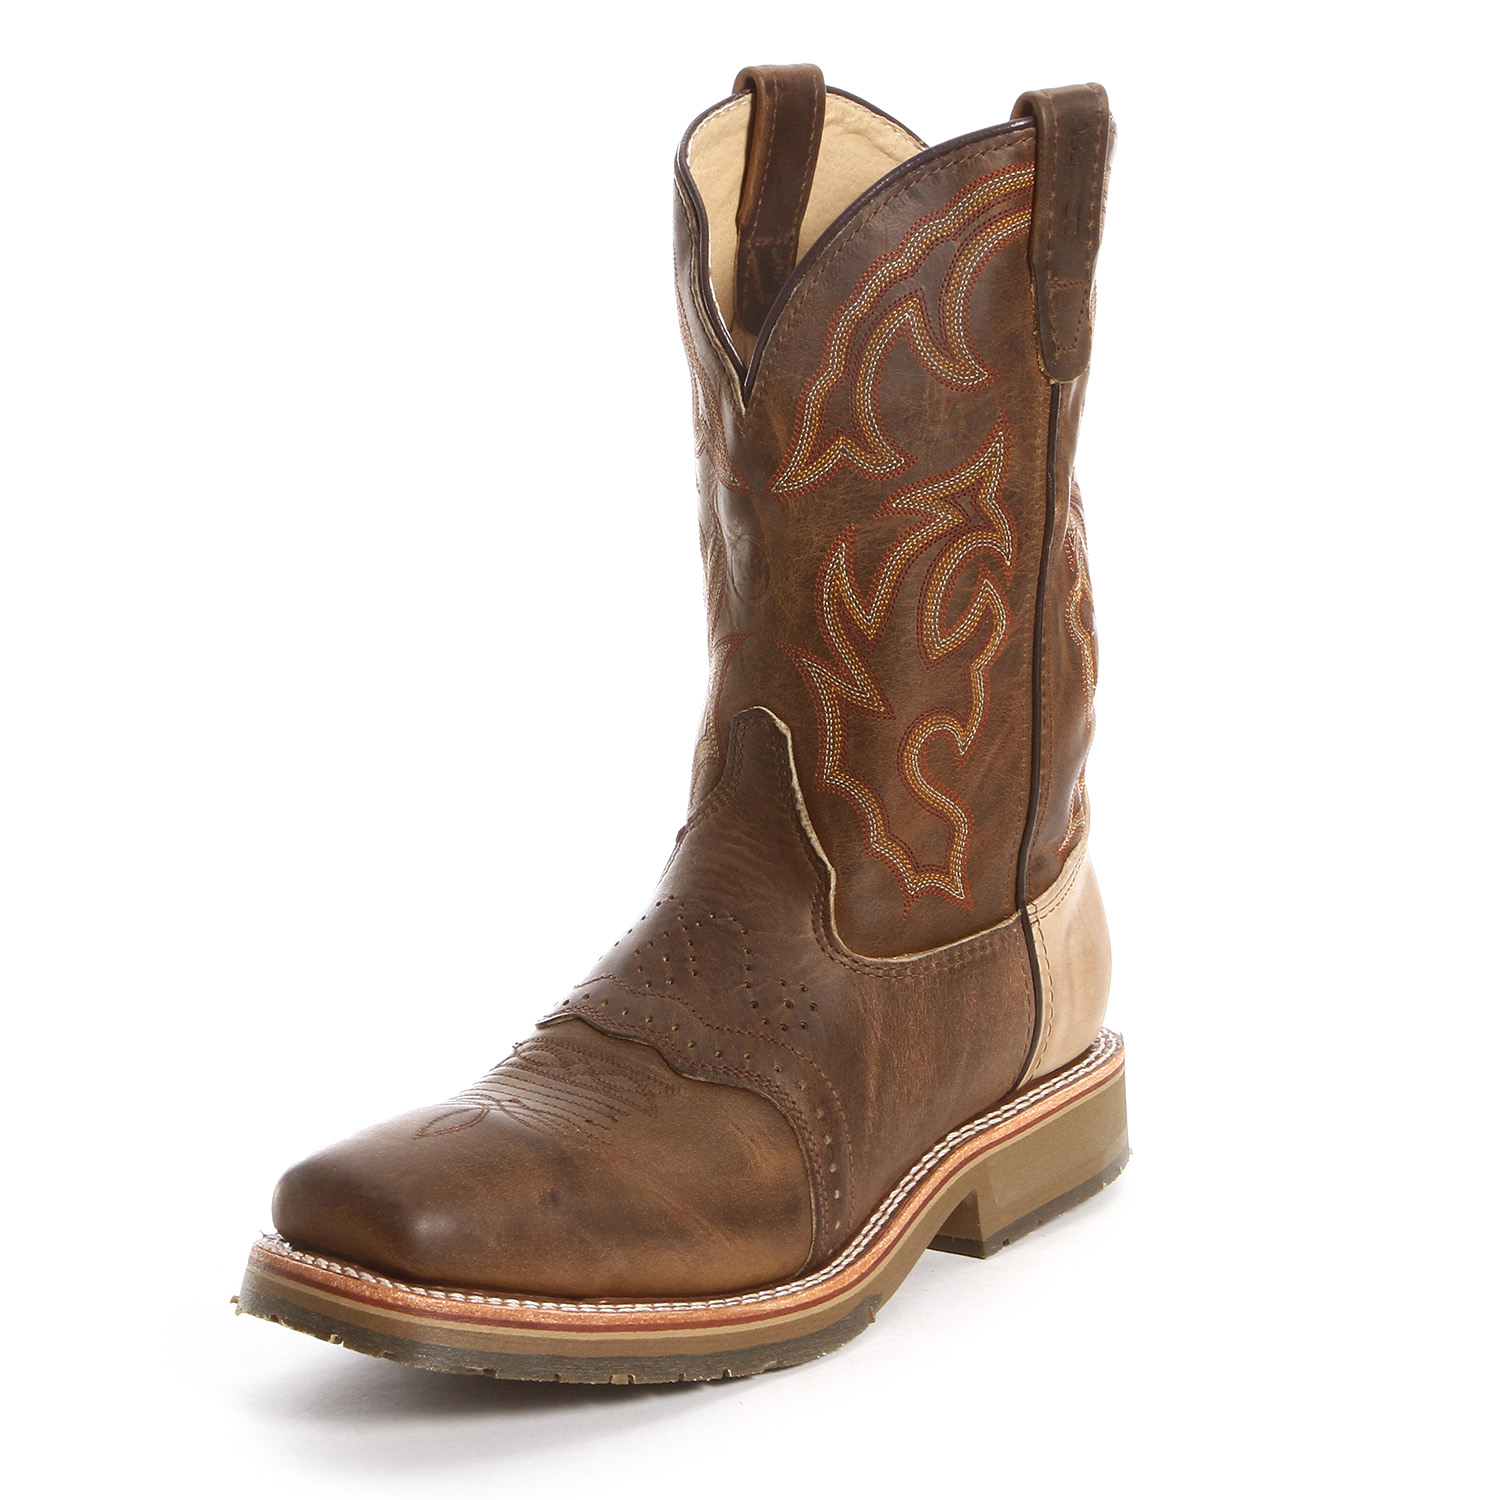 Double H Steel Toe Square Toe Roper Work Boots Brown